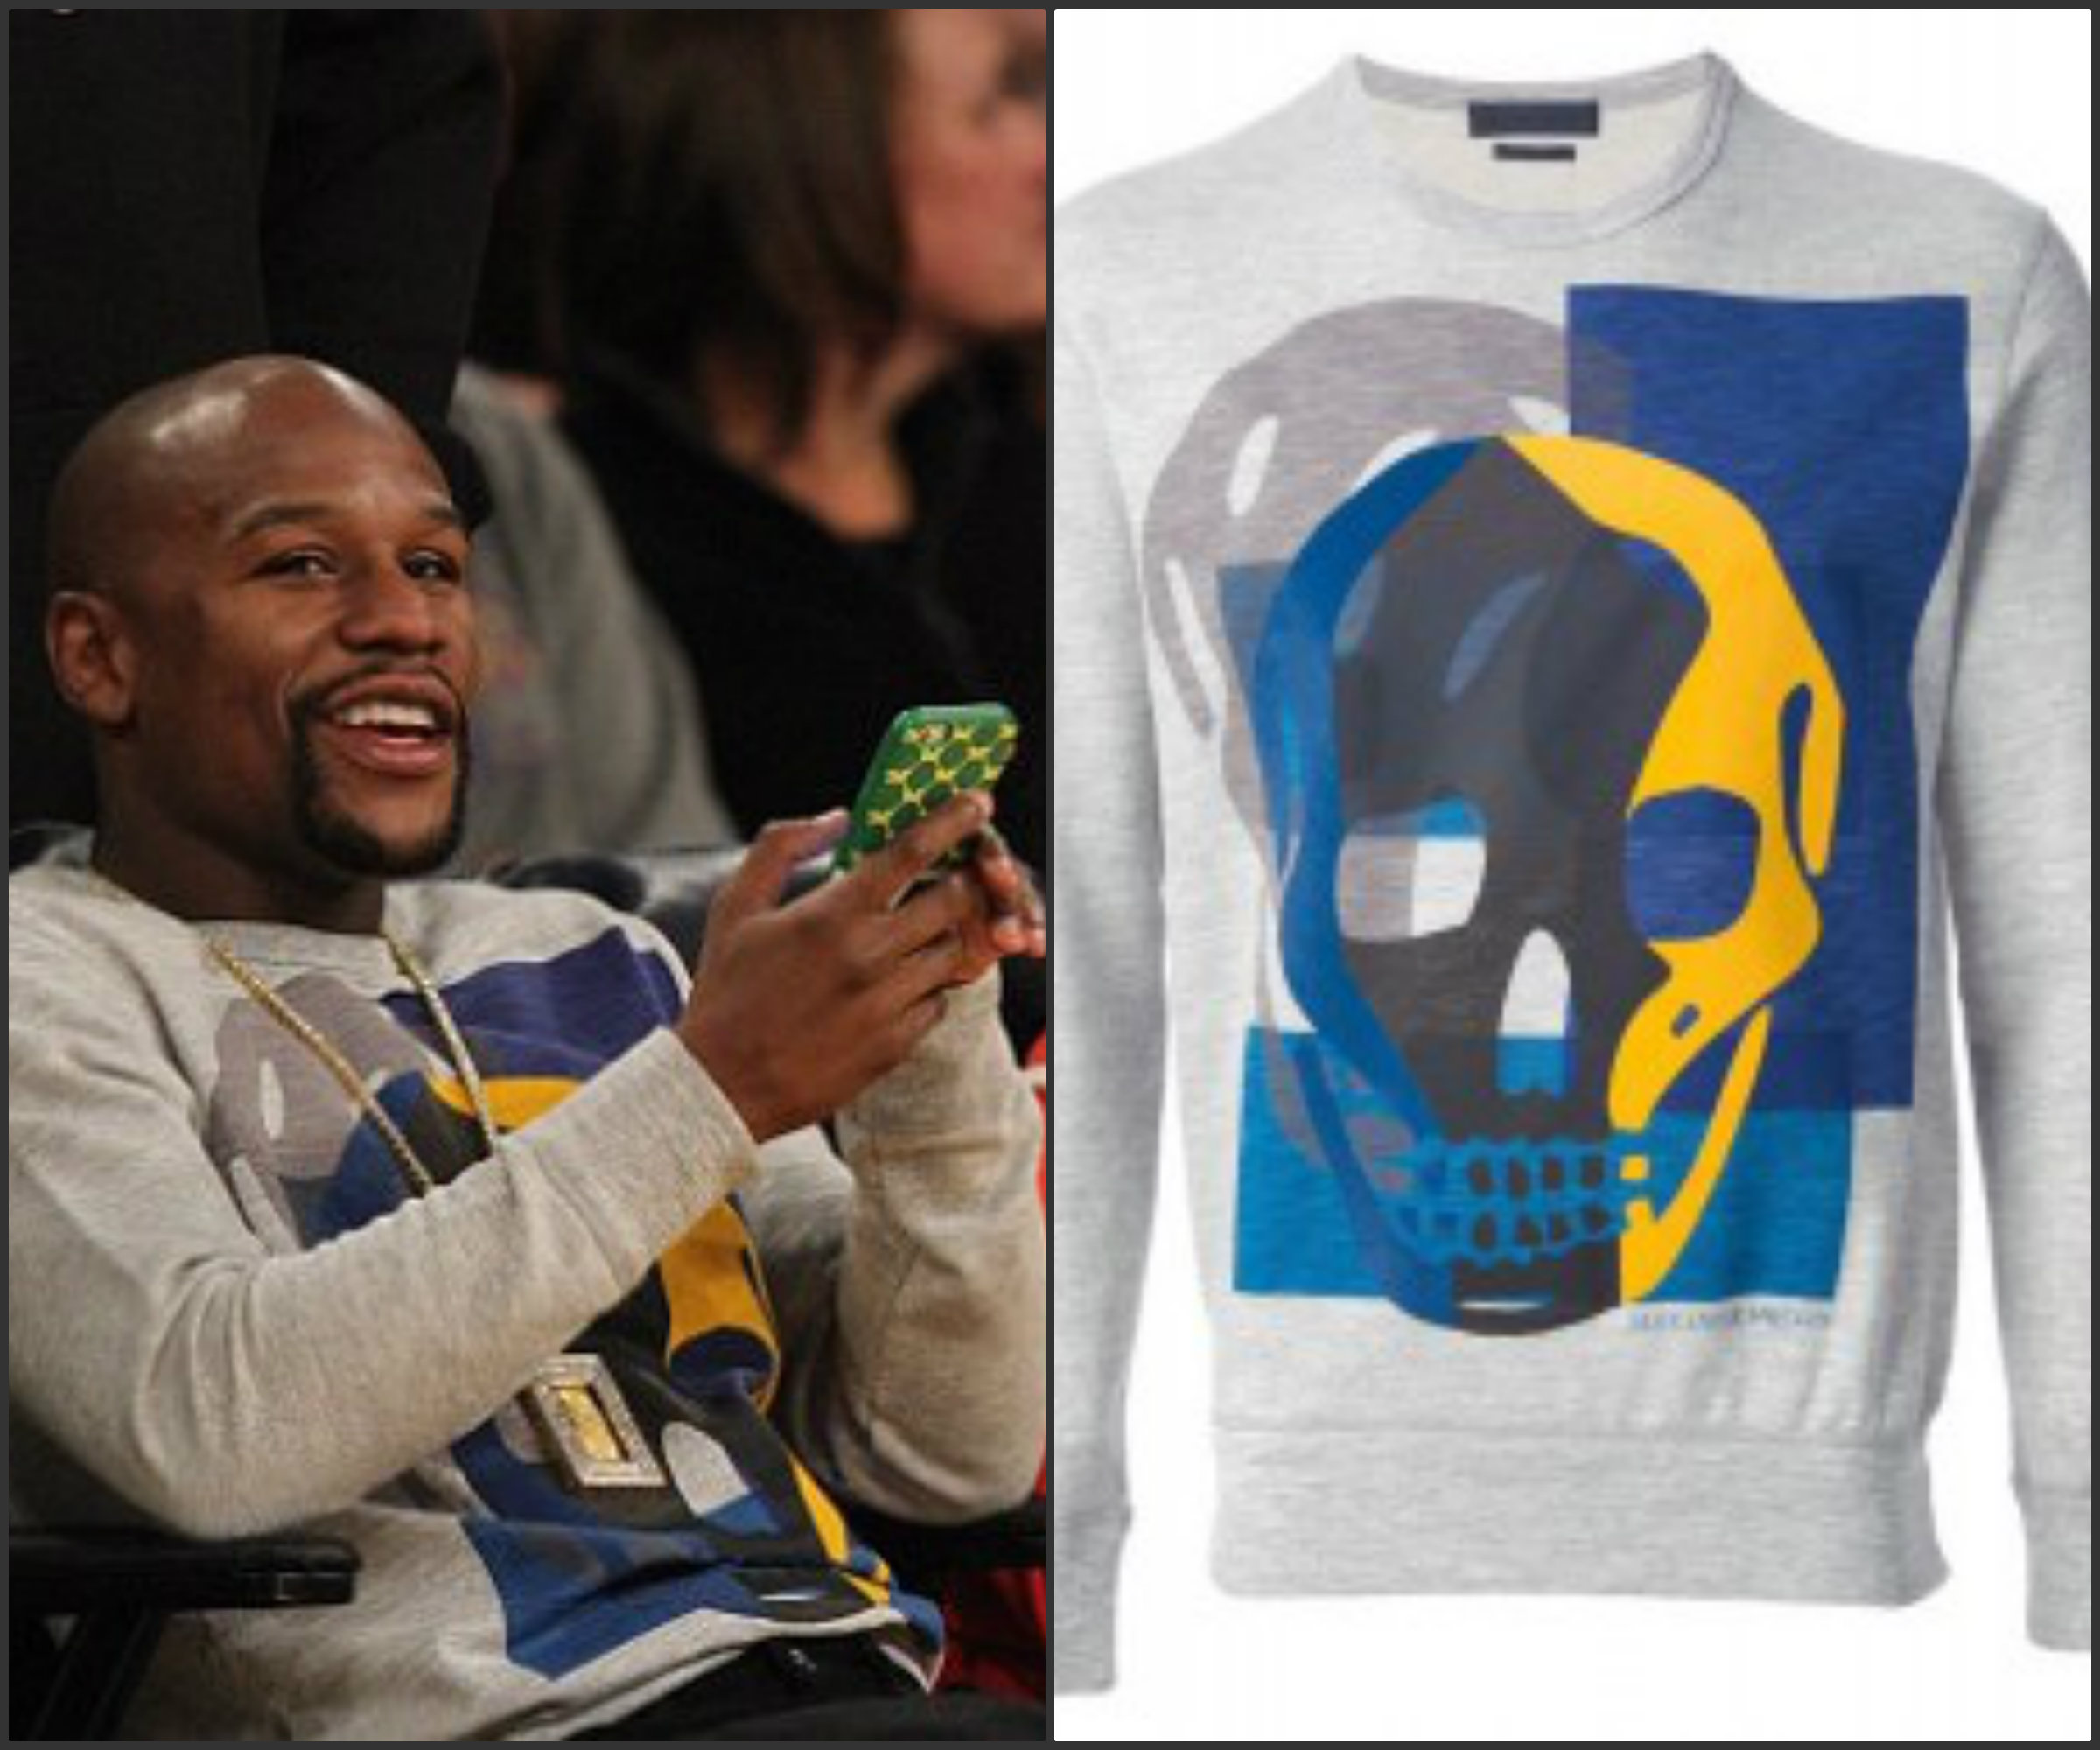 Floyd-Mayweather-sits-courtside-in-Alexander-Mcqueen